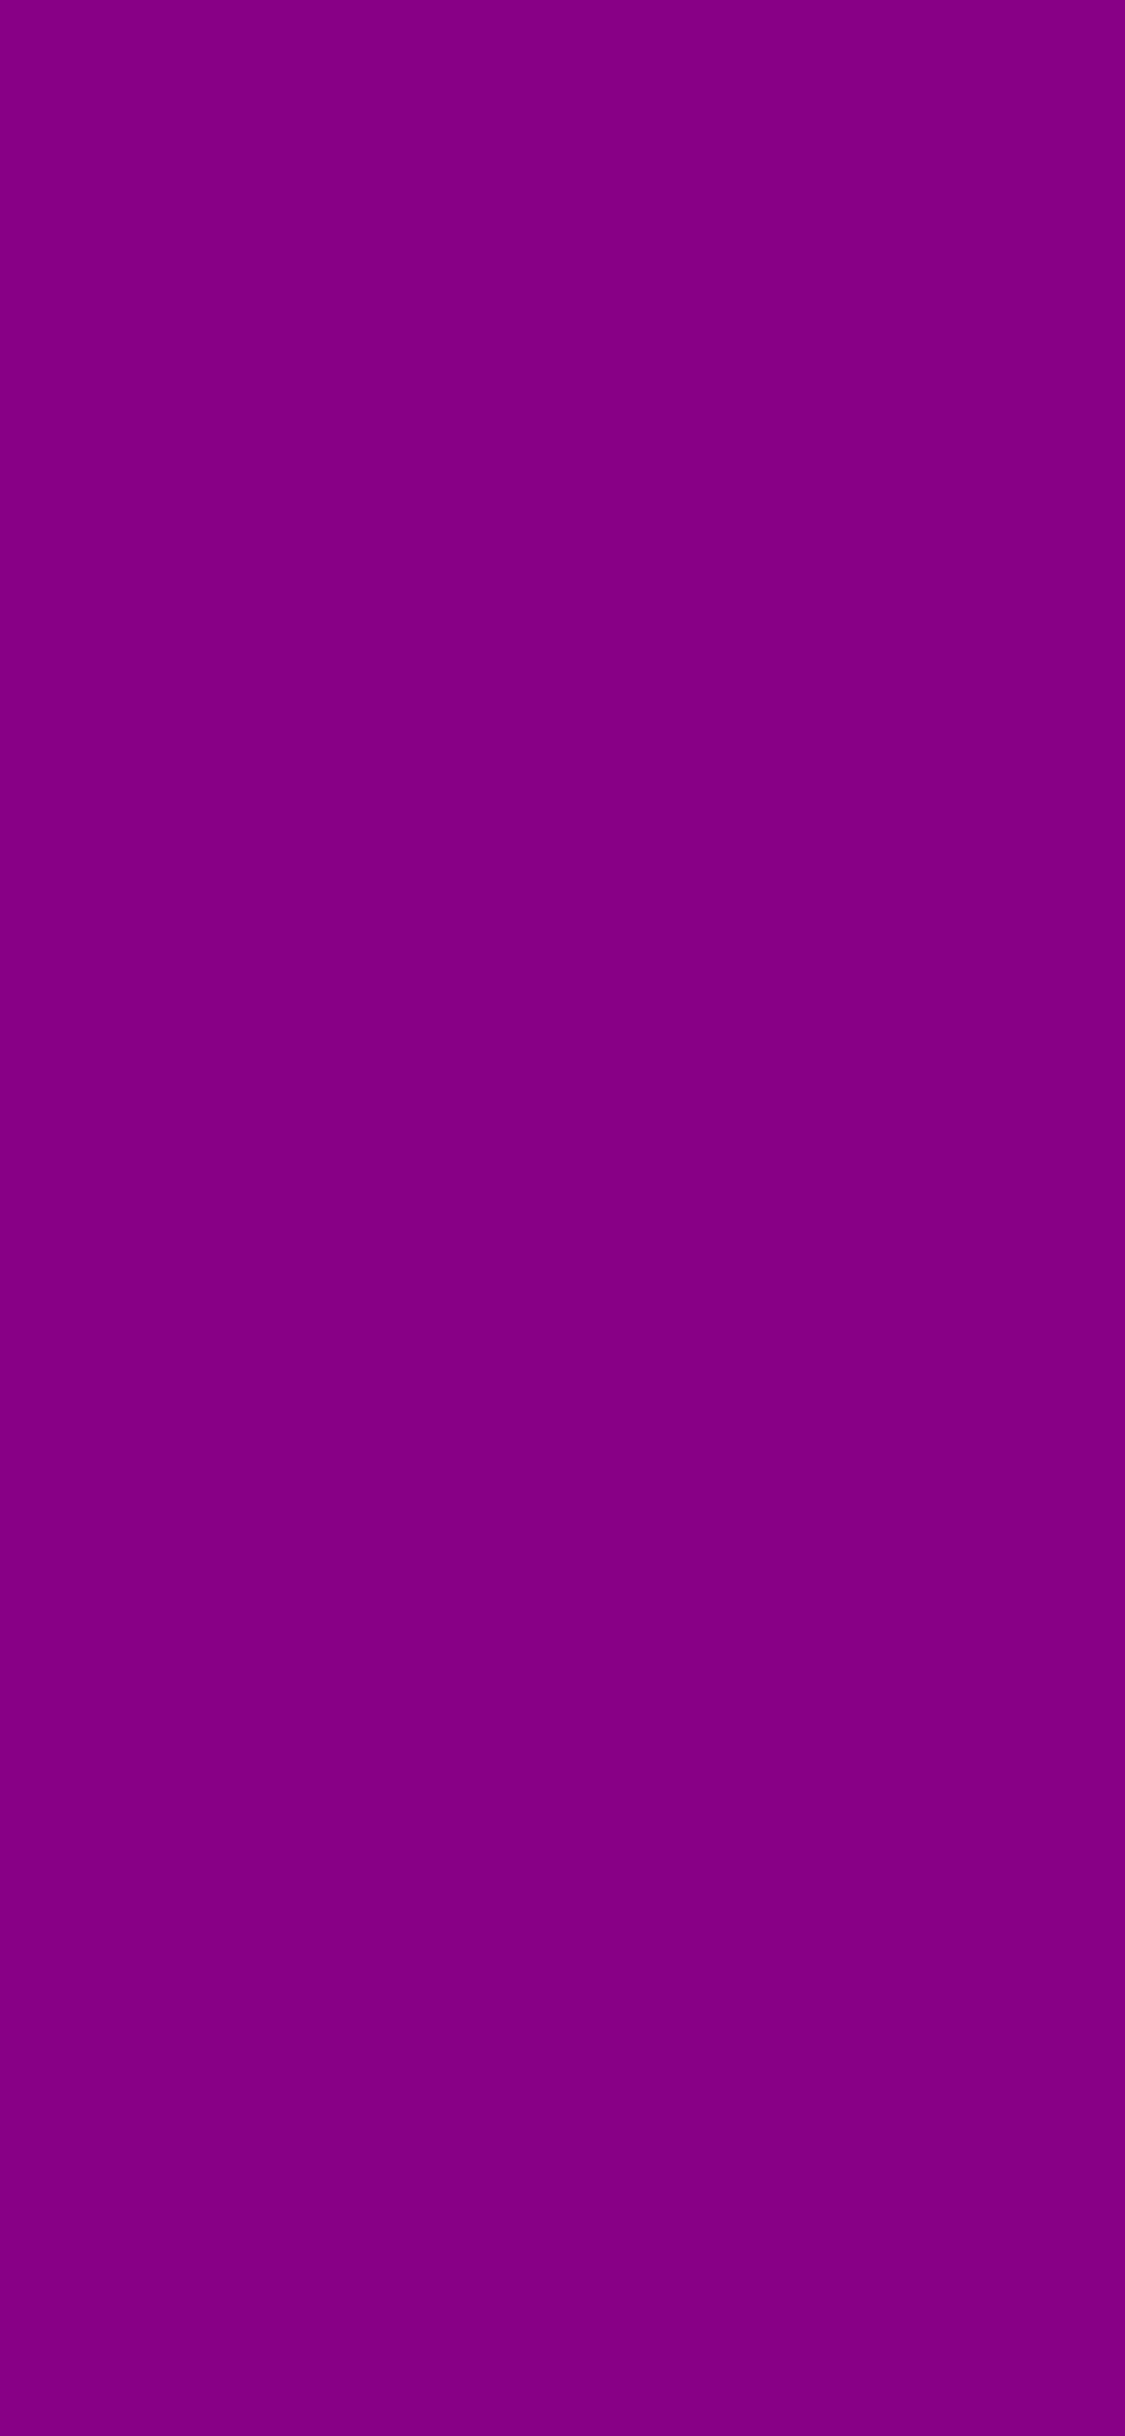 1125x2436 Mardi Gras Solid Color Background